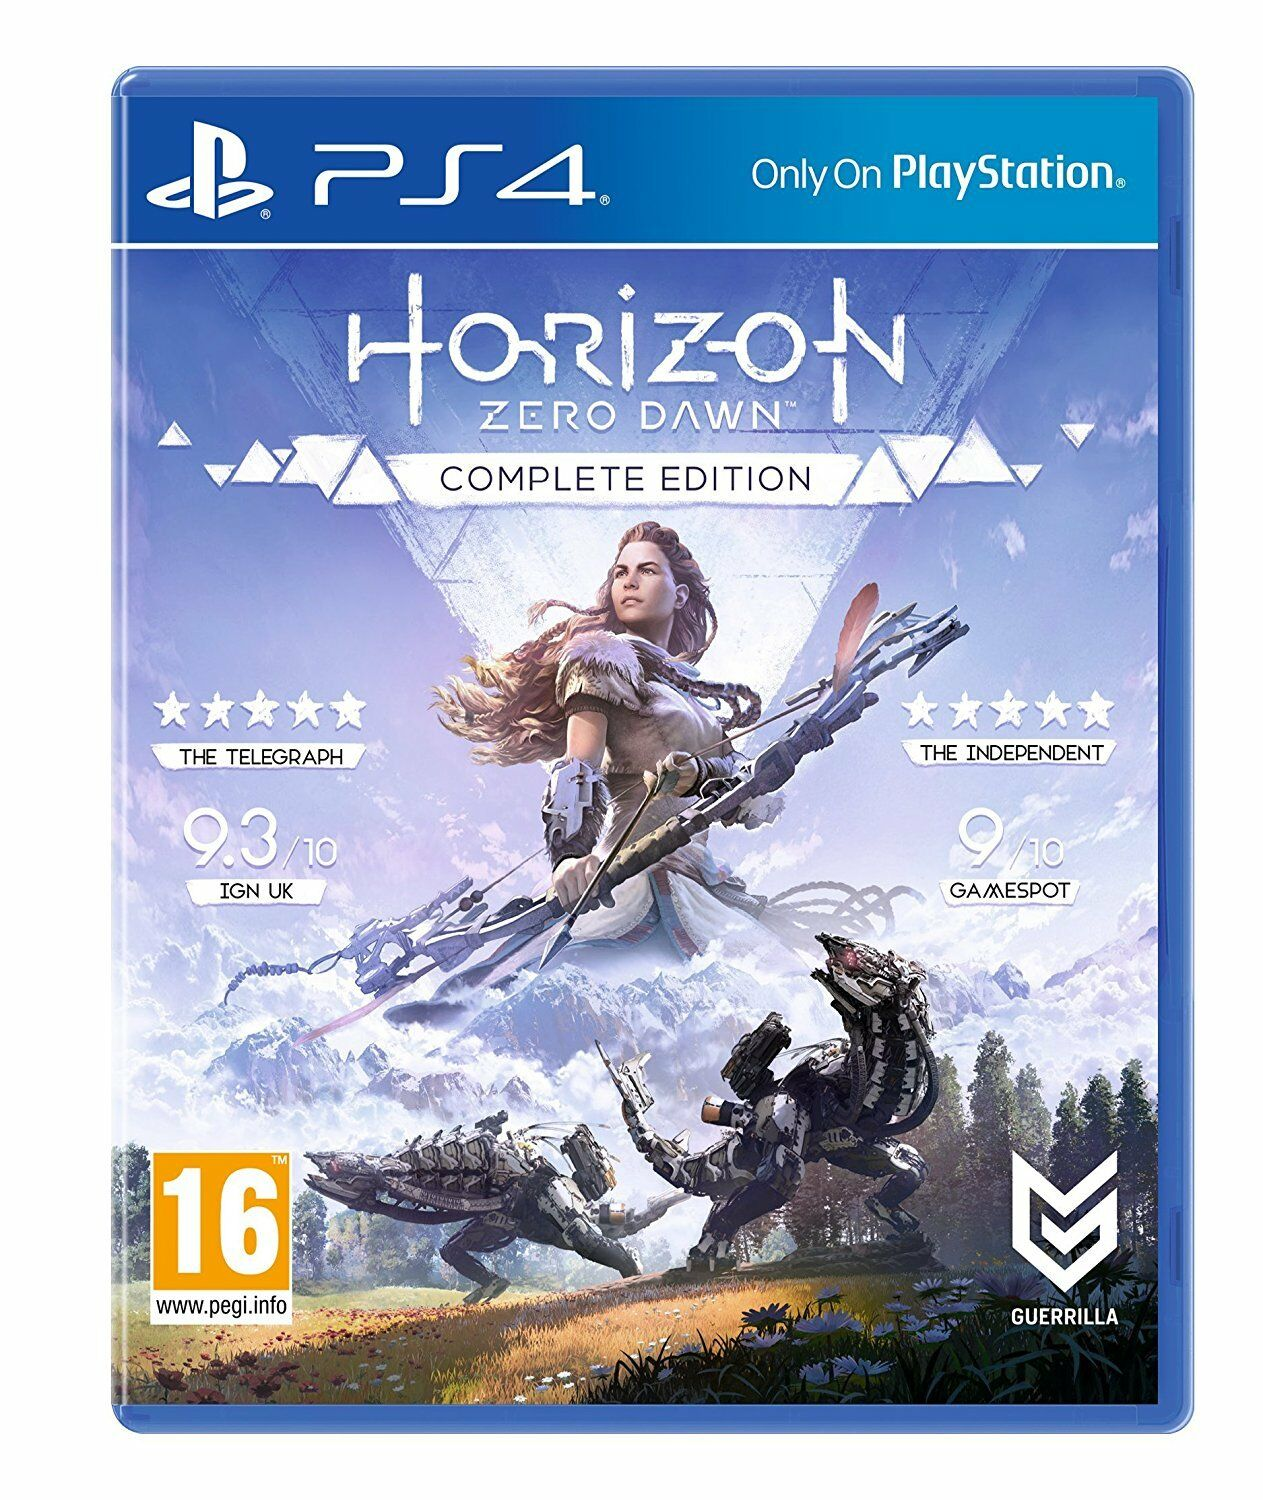 Horizon Zero Dawn Complete Edition - PS4 Playstation 4 Spiel - NEU OVP